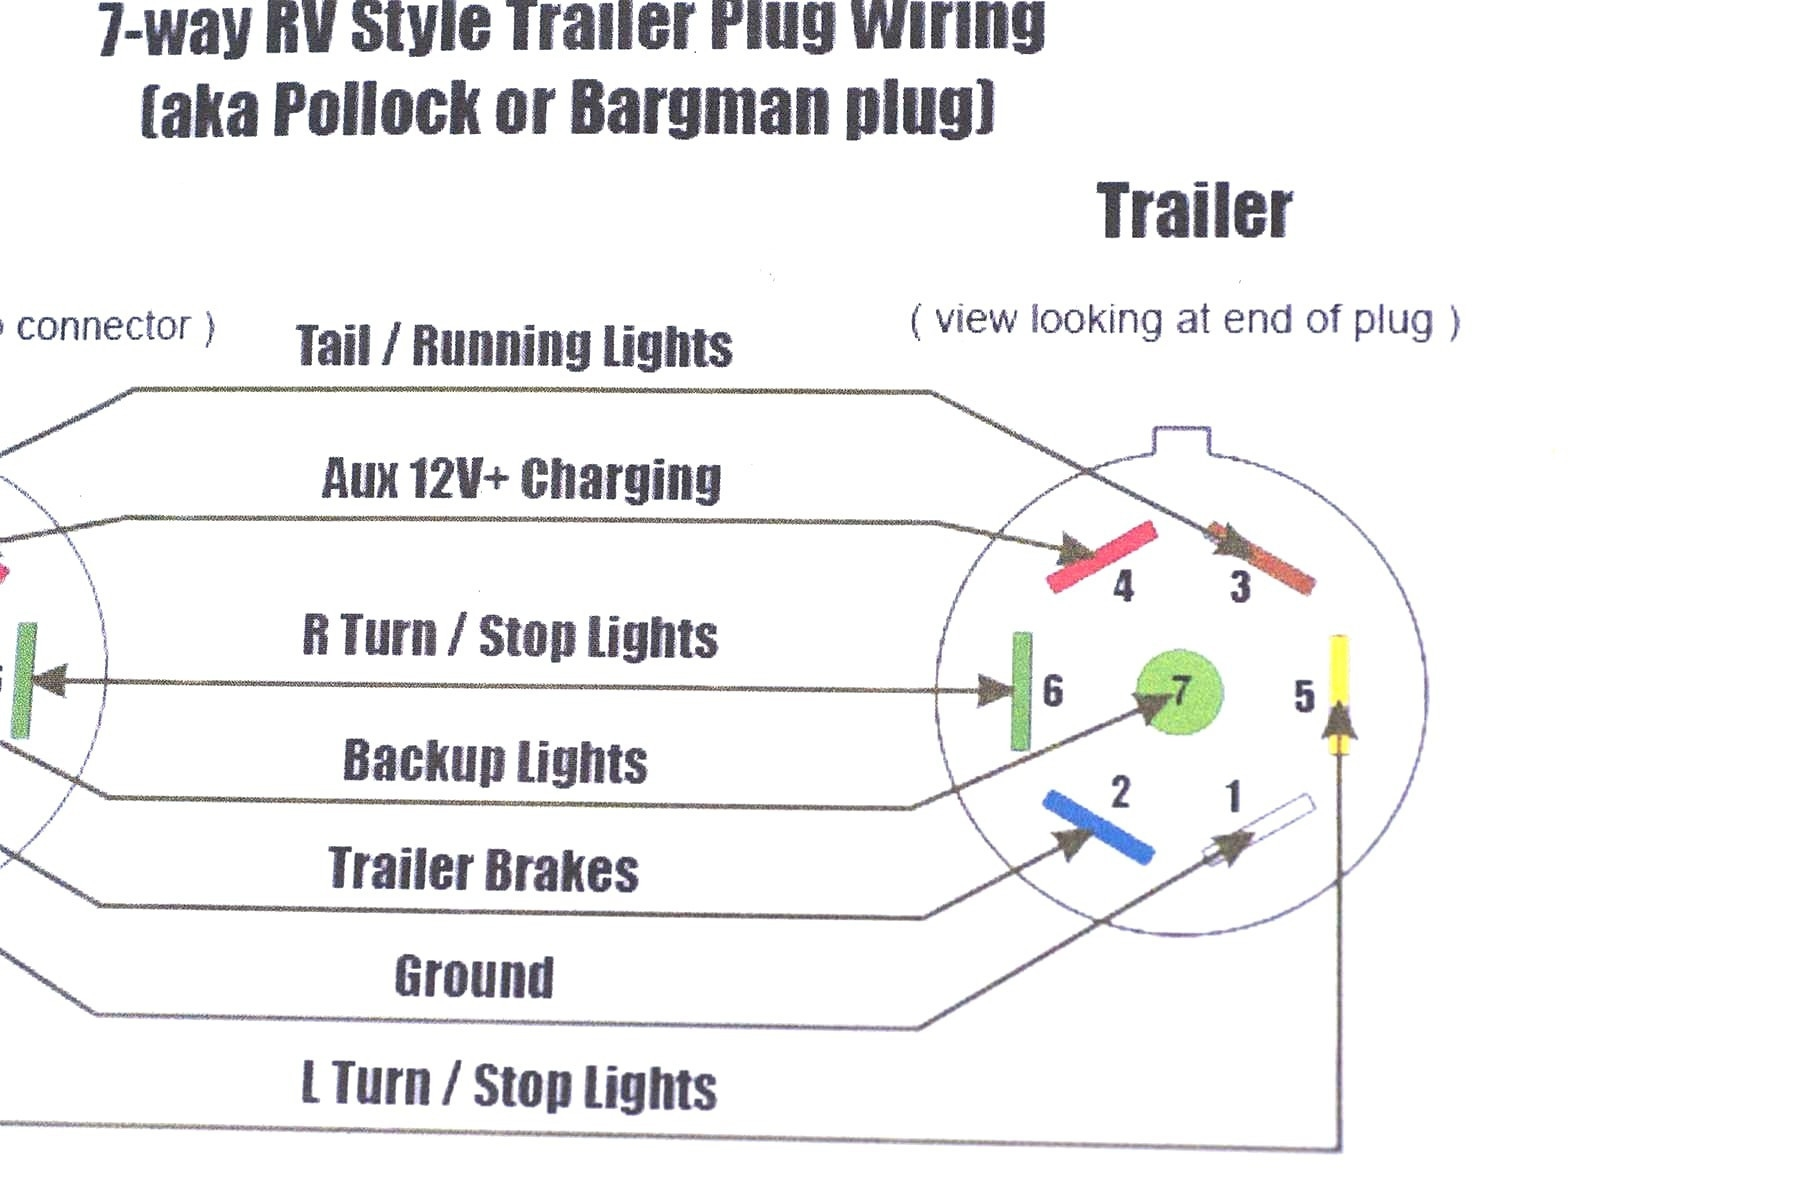 S H Trailer Wiring Diagram - Wiring Diagrams Name Wet Jet Wiring Diagram on